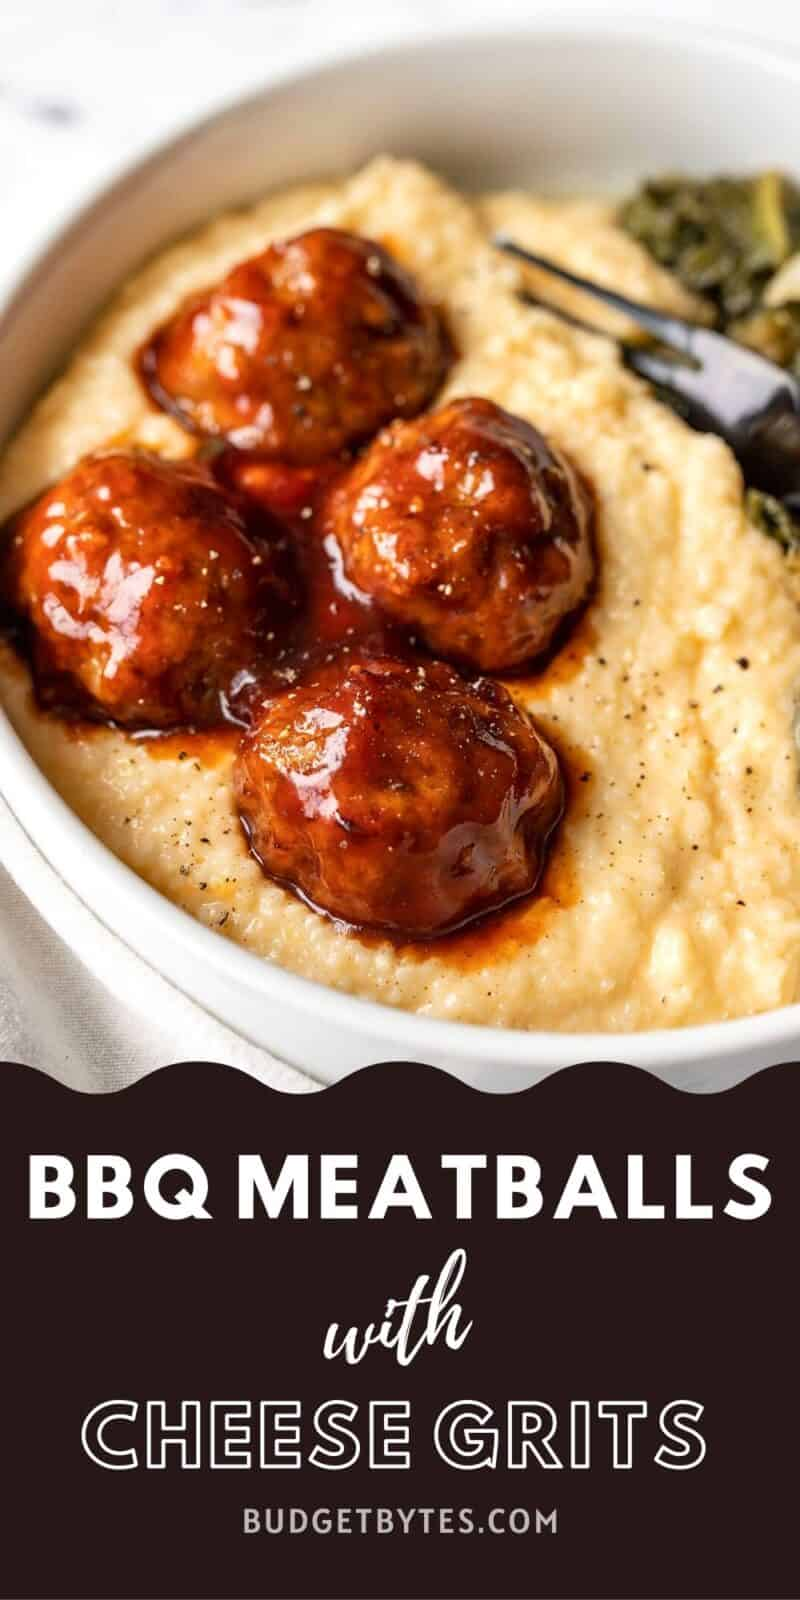 Close up side view of bbq meatballs with cheese grits, title text at the bottom